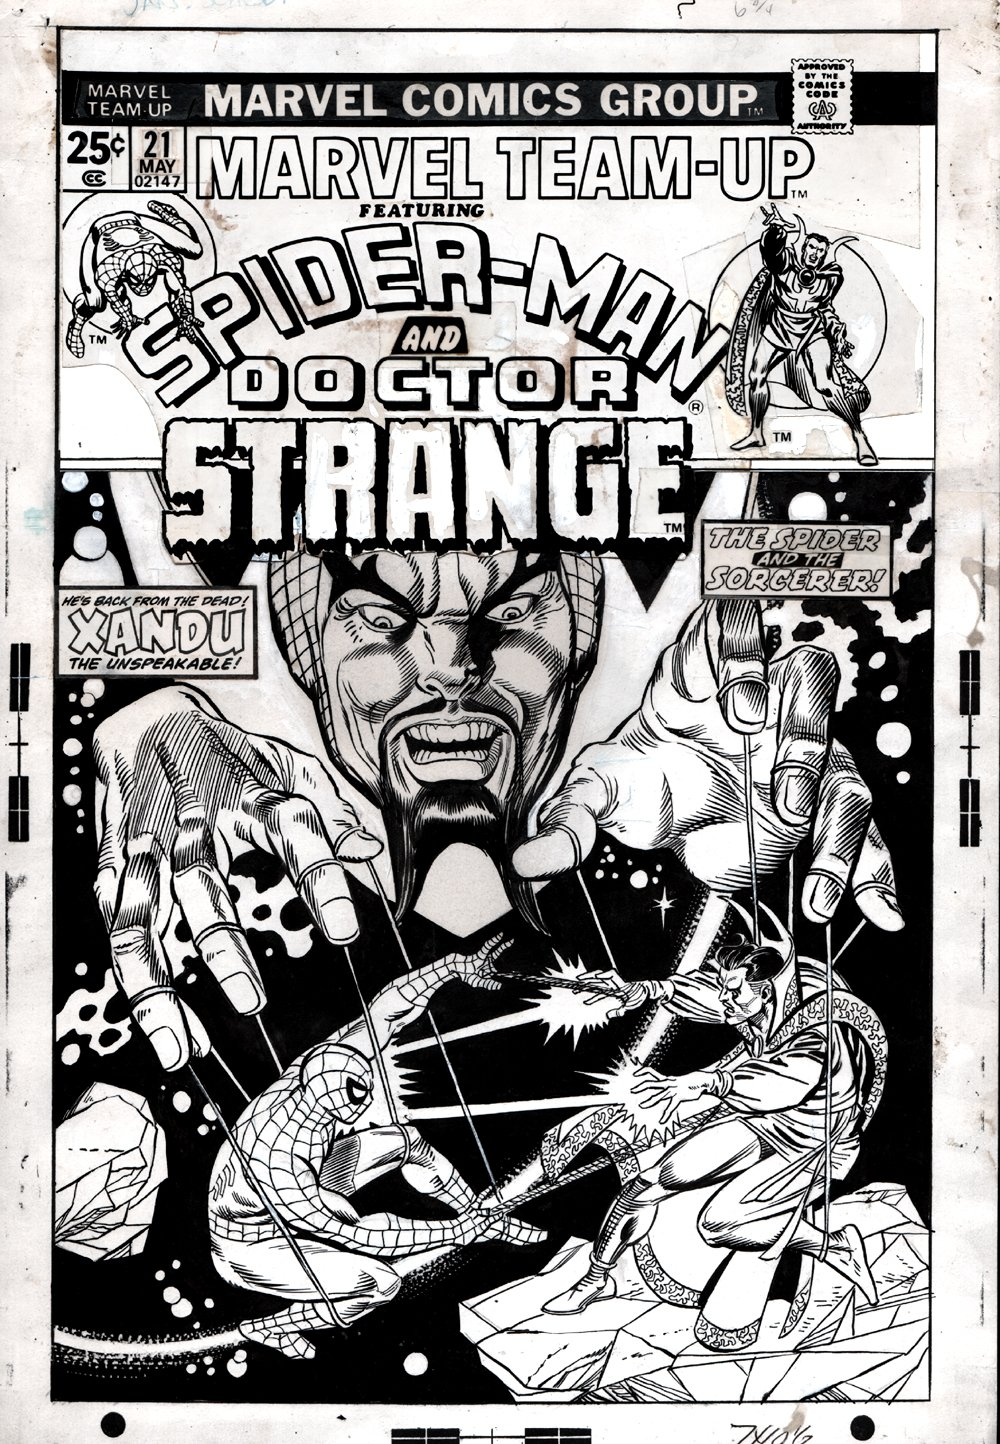 Marvel Team-Up #21 Cover (SPIDER-MAN BATTLES DR. STRANGE!) 1974